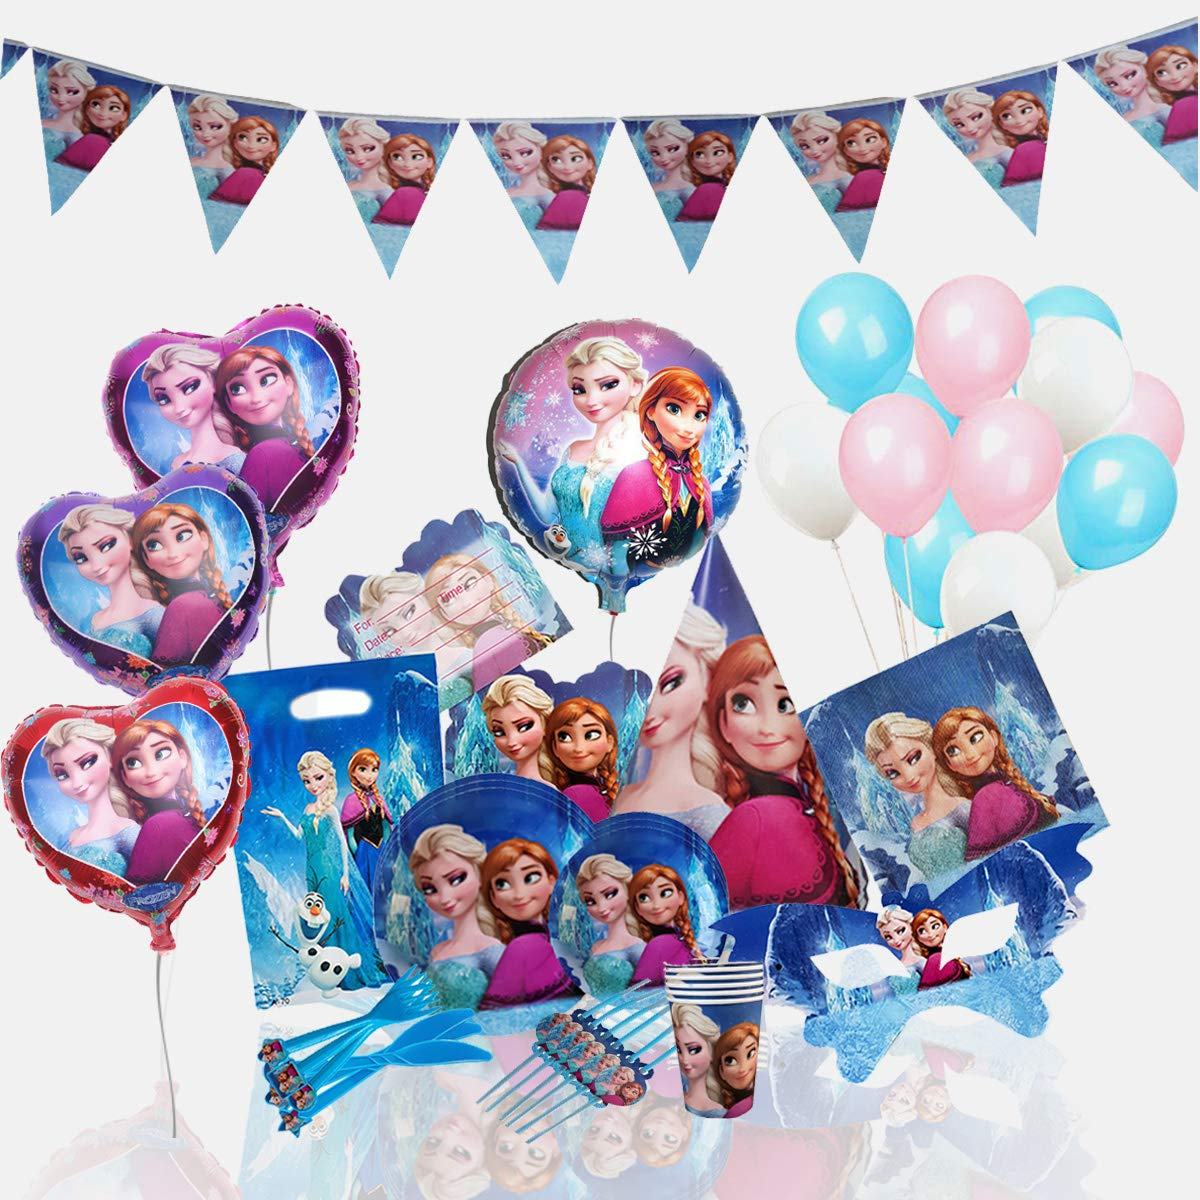 Frozen Party Bundles for 12 Guests